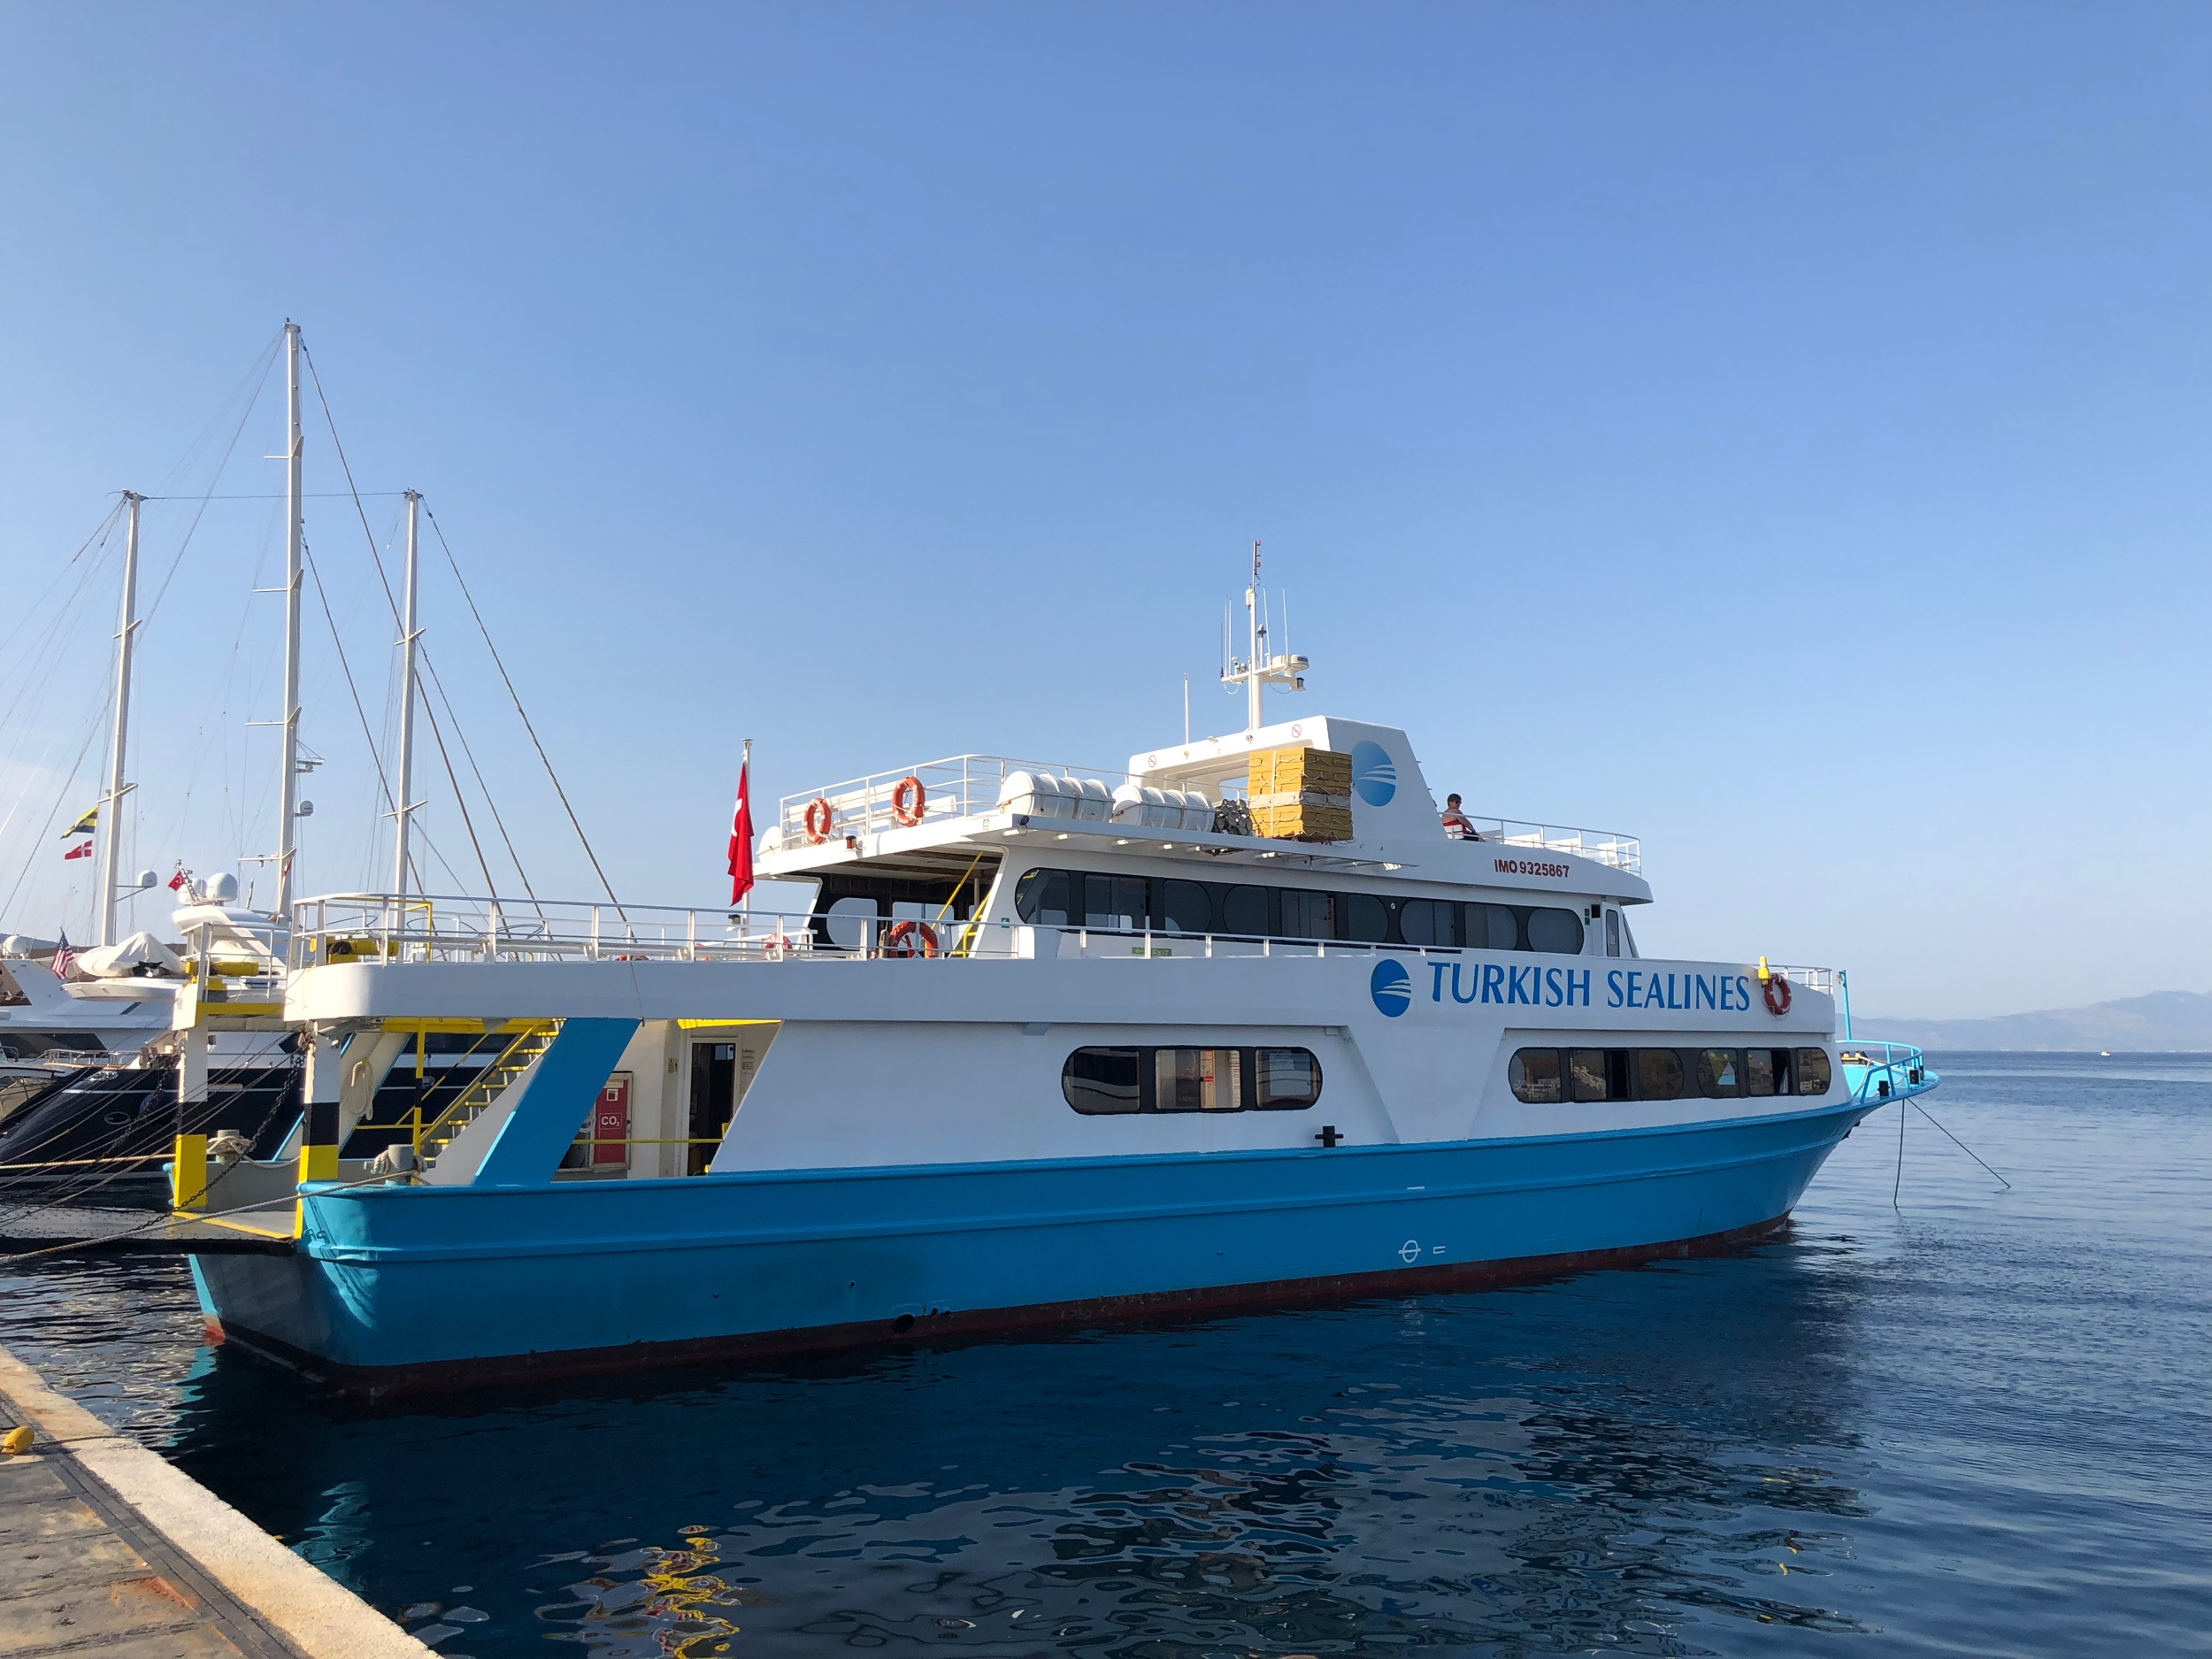 Ferry from Bodrum to Kos